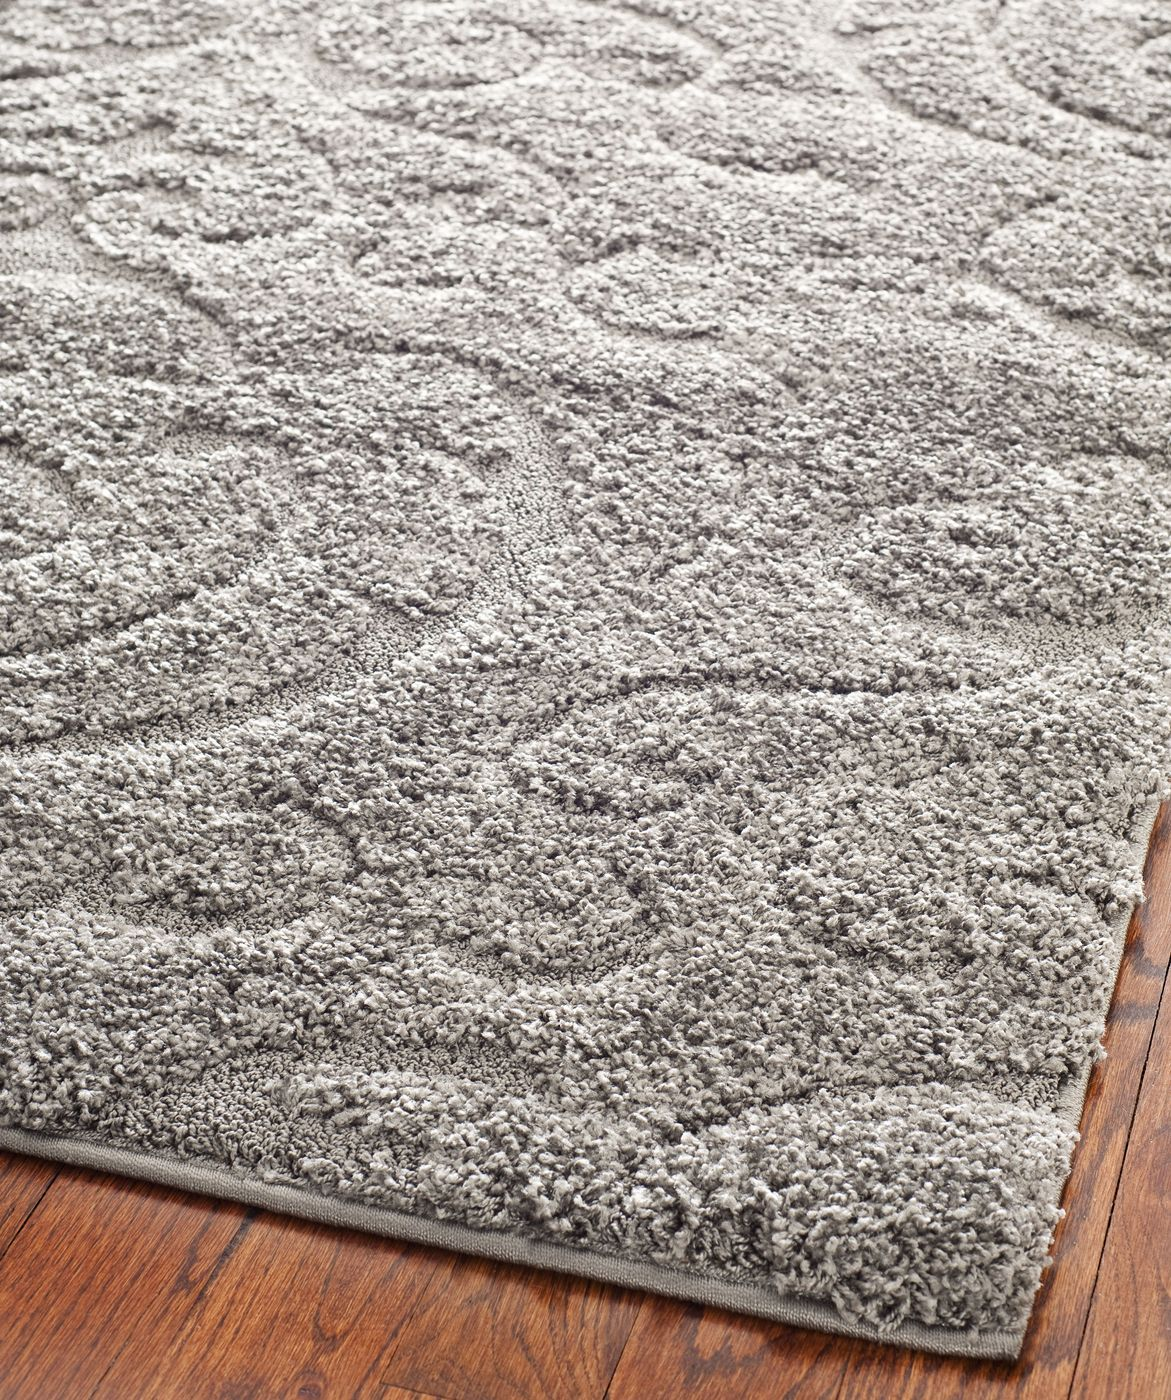 Possibly For Baby S Room Safavieh Sg462 8013 Florida Shag Area Rug